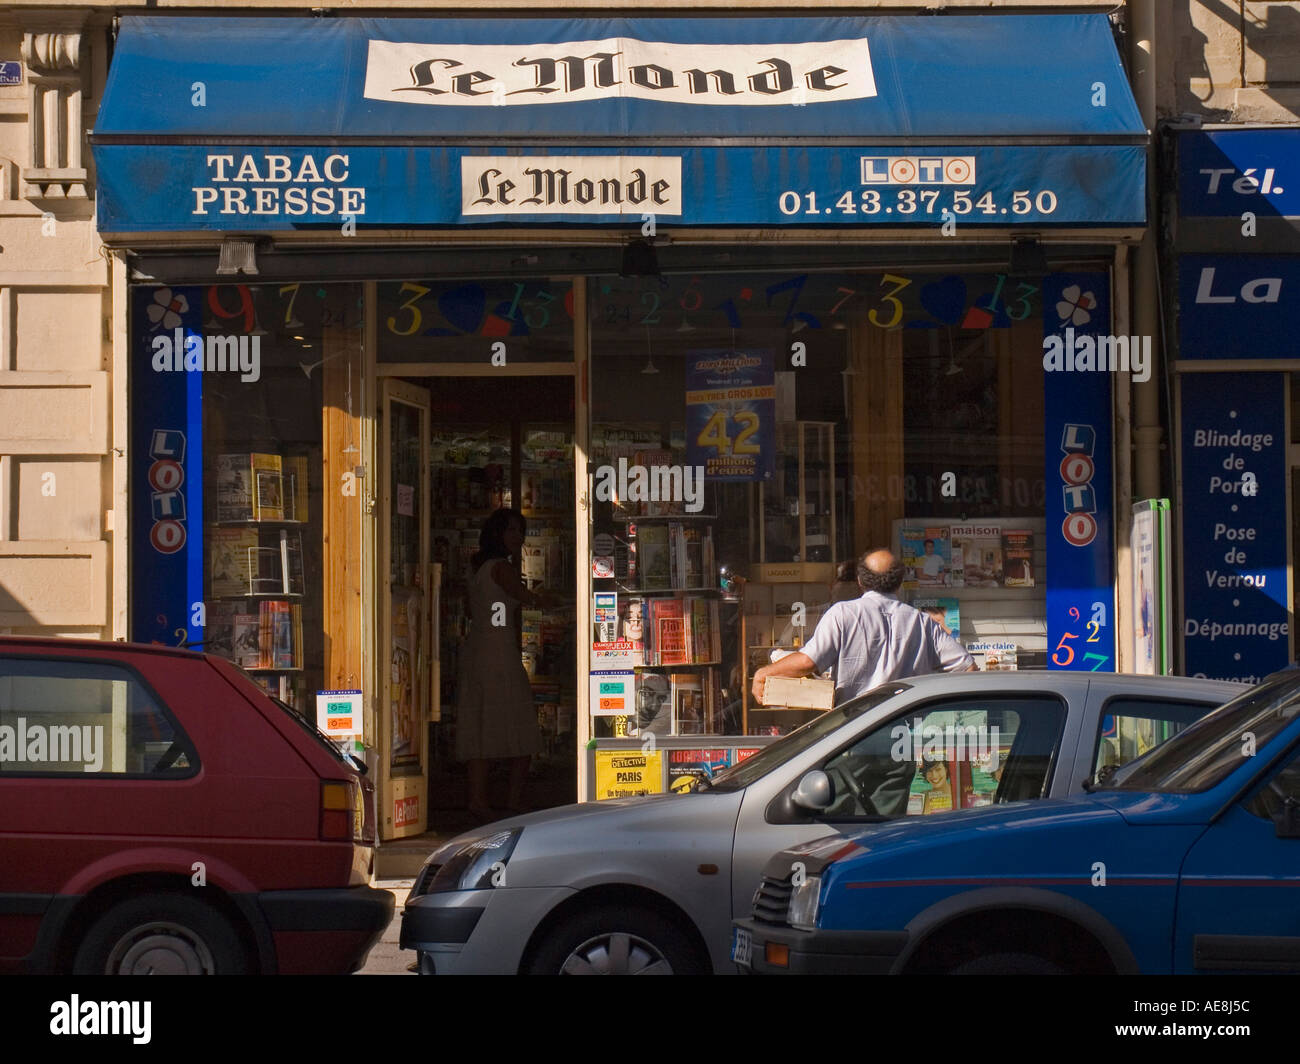 Man looking in window of Tabac and Presse shop on Rue Claude Bernard Paris France - Stock Image